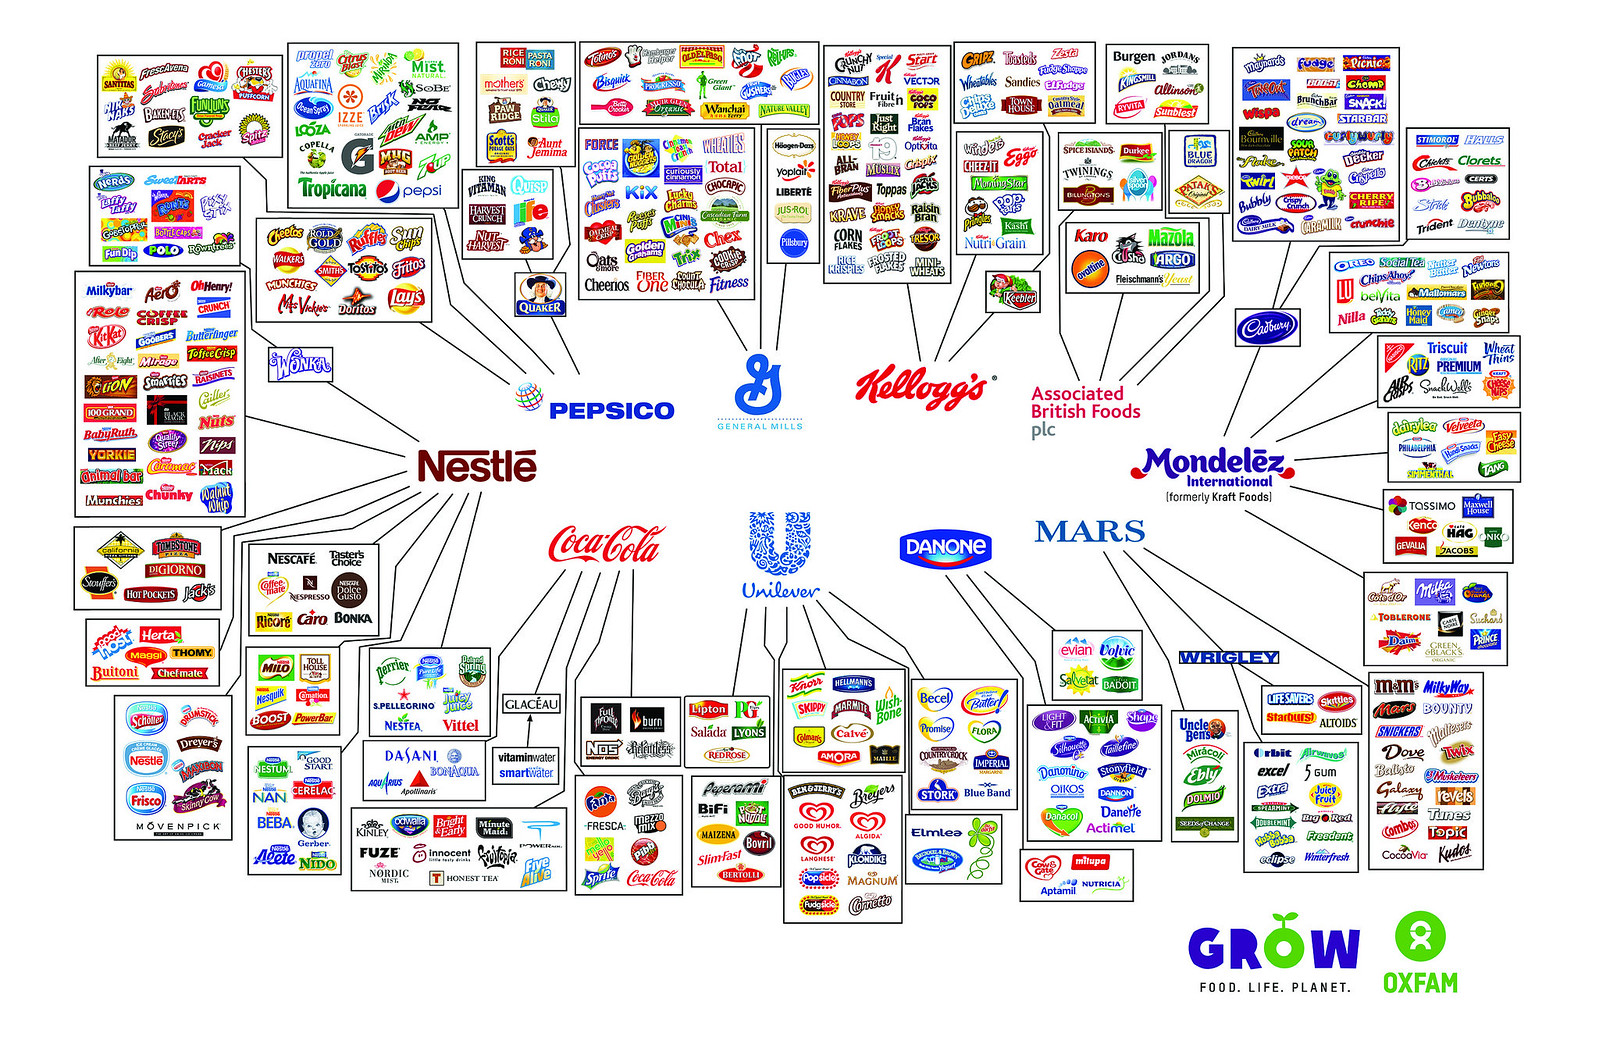 These 10 companies make a lot of the food we buy